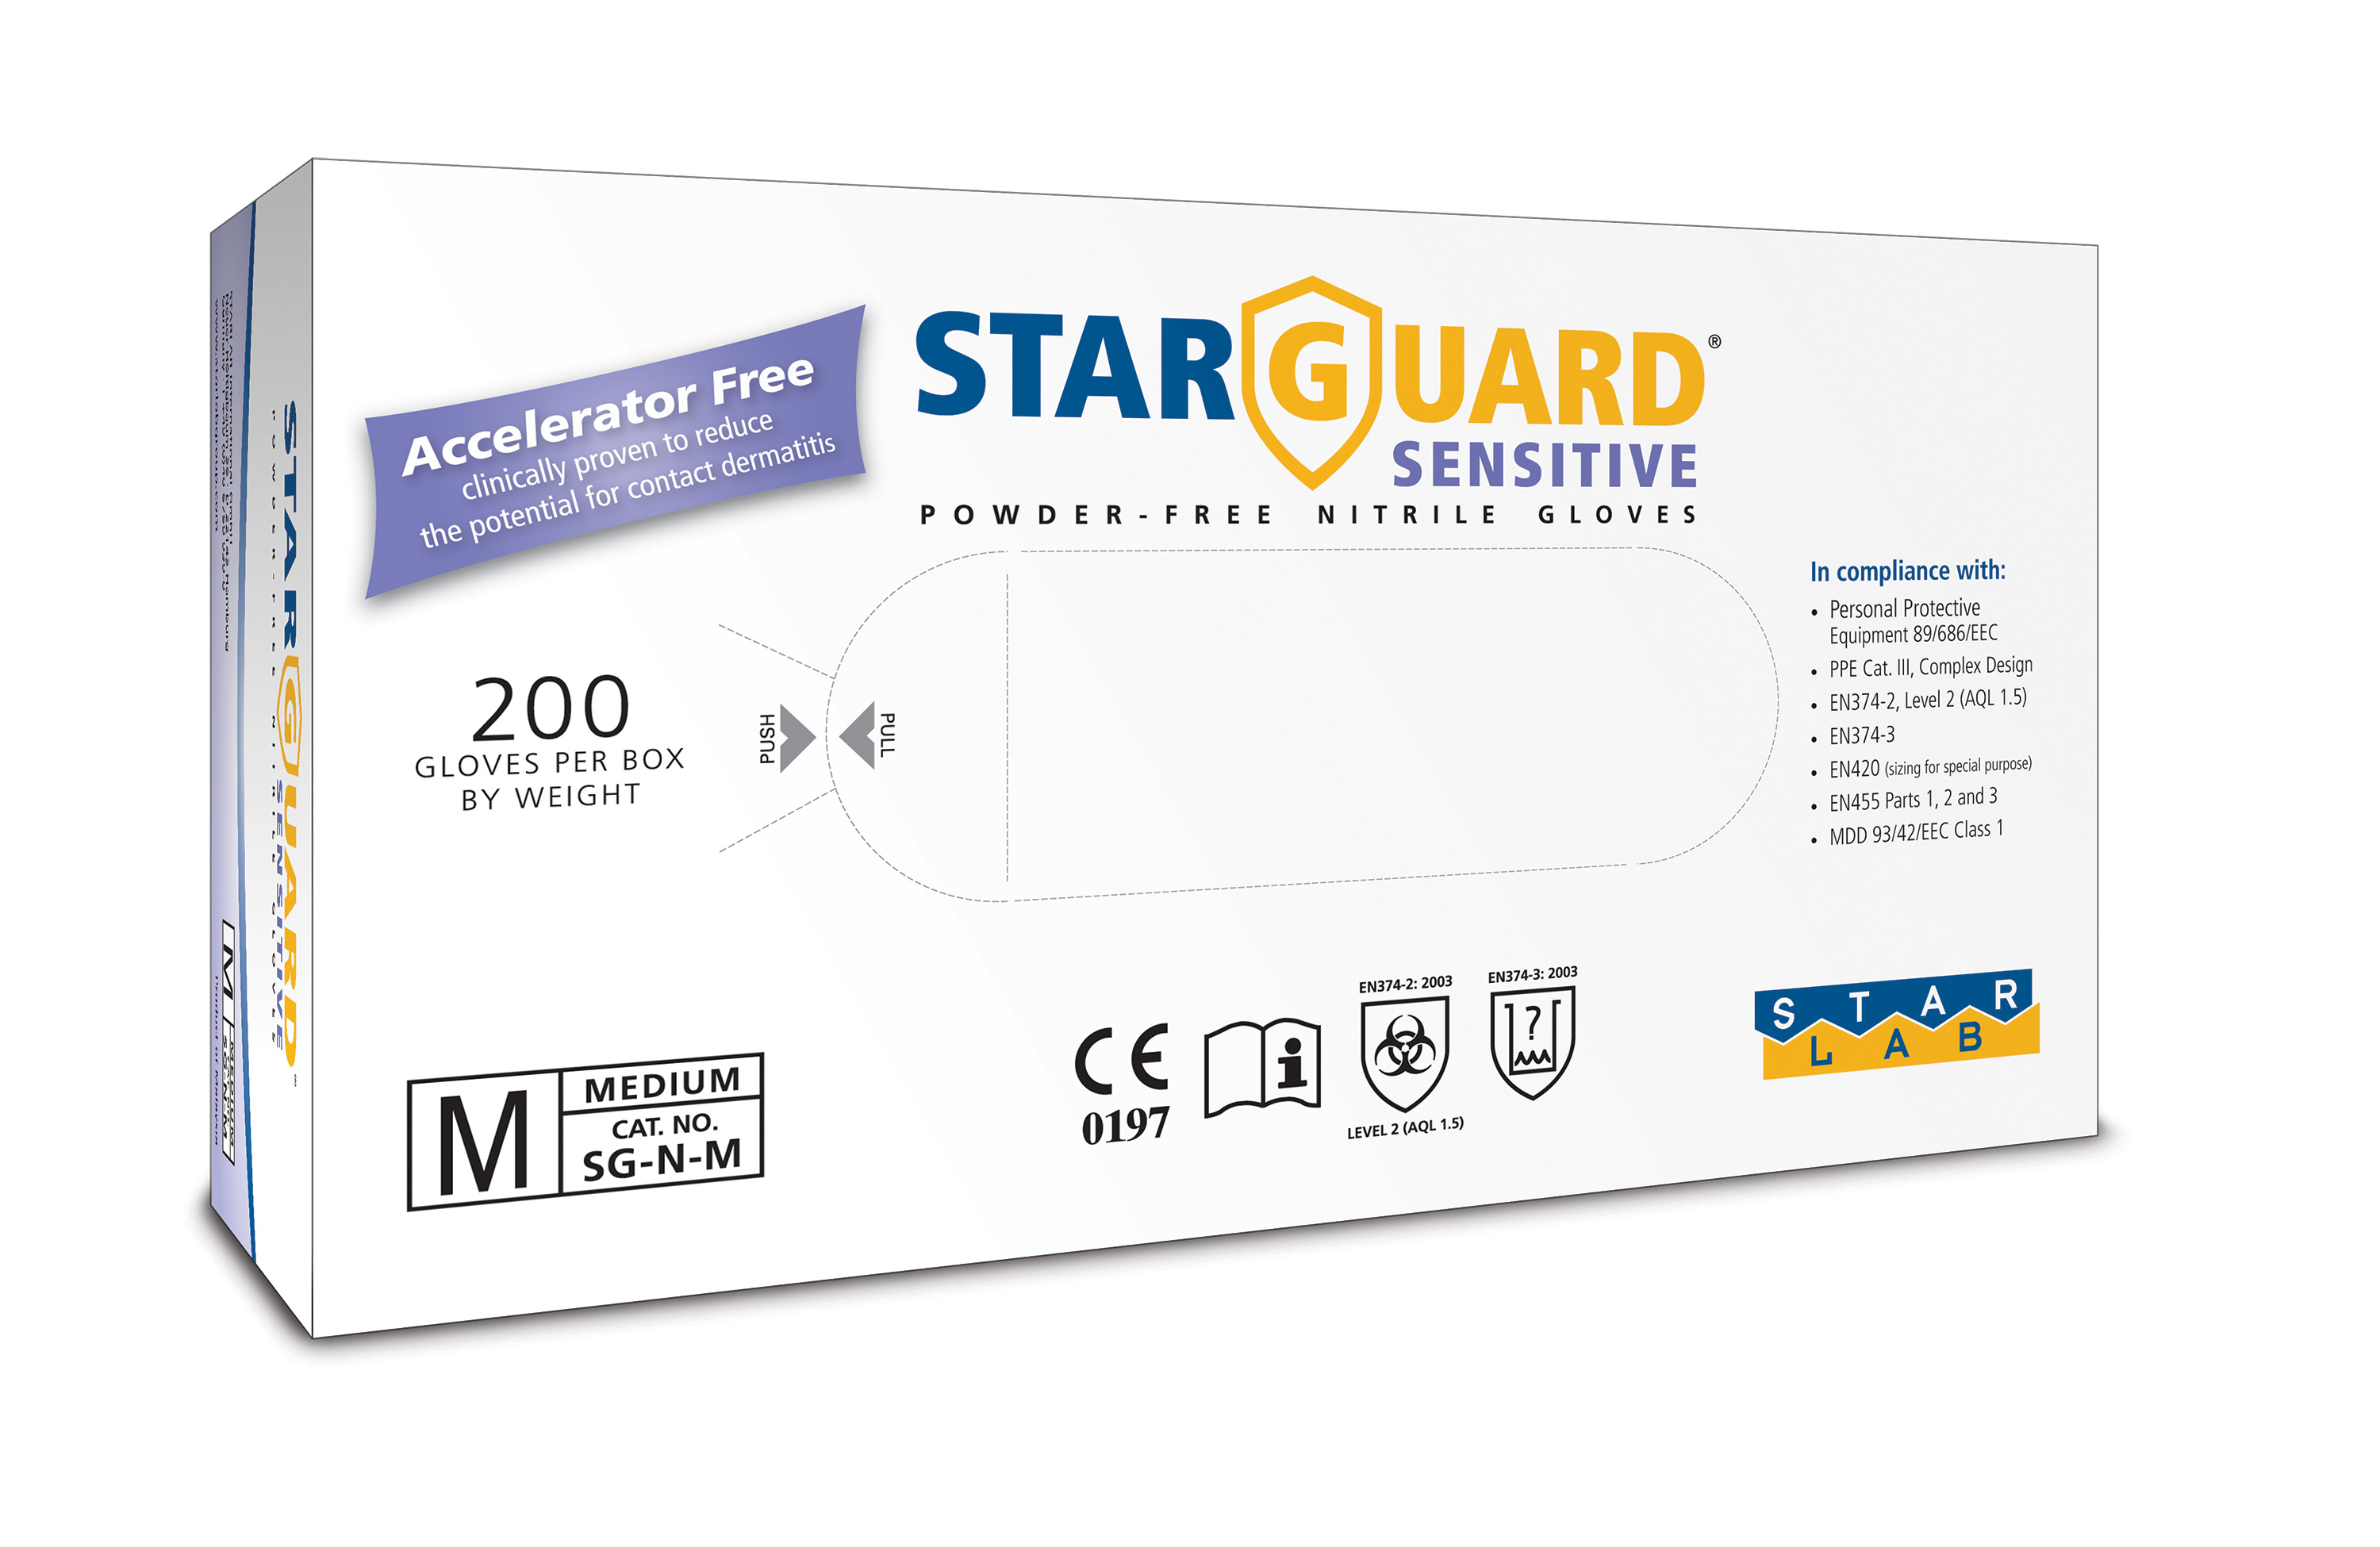 StarGuard SENSITIVE Nitrile Gloves, Powder Free, Blue, Size L, Pk/ 10 x 200 gloves